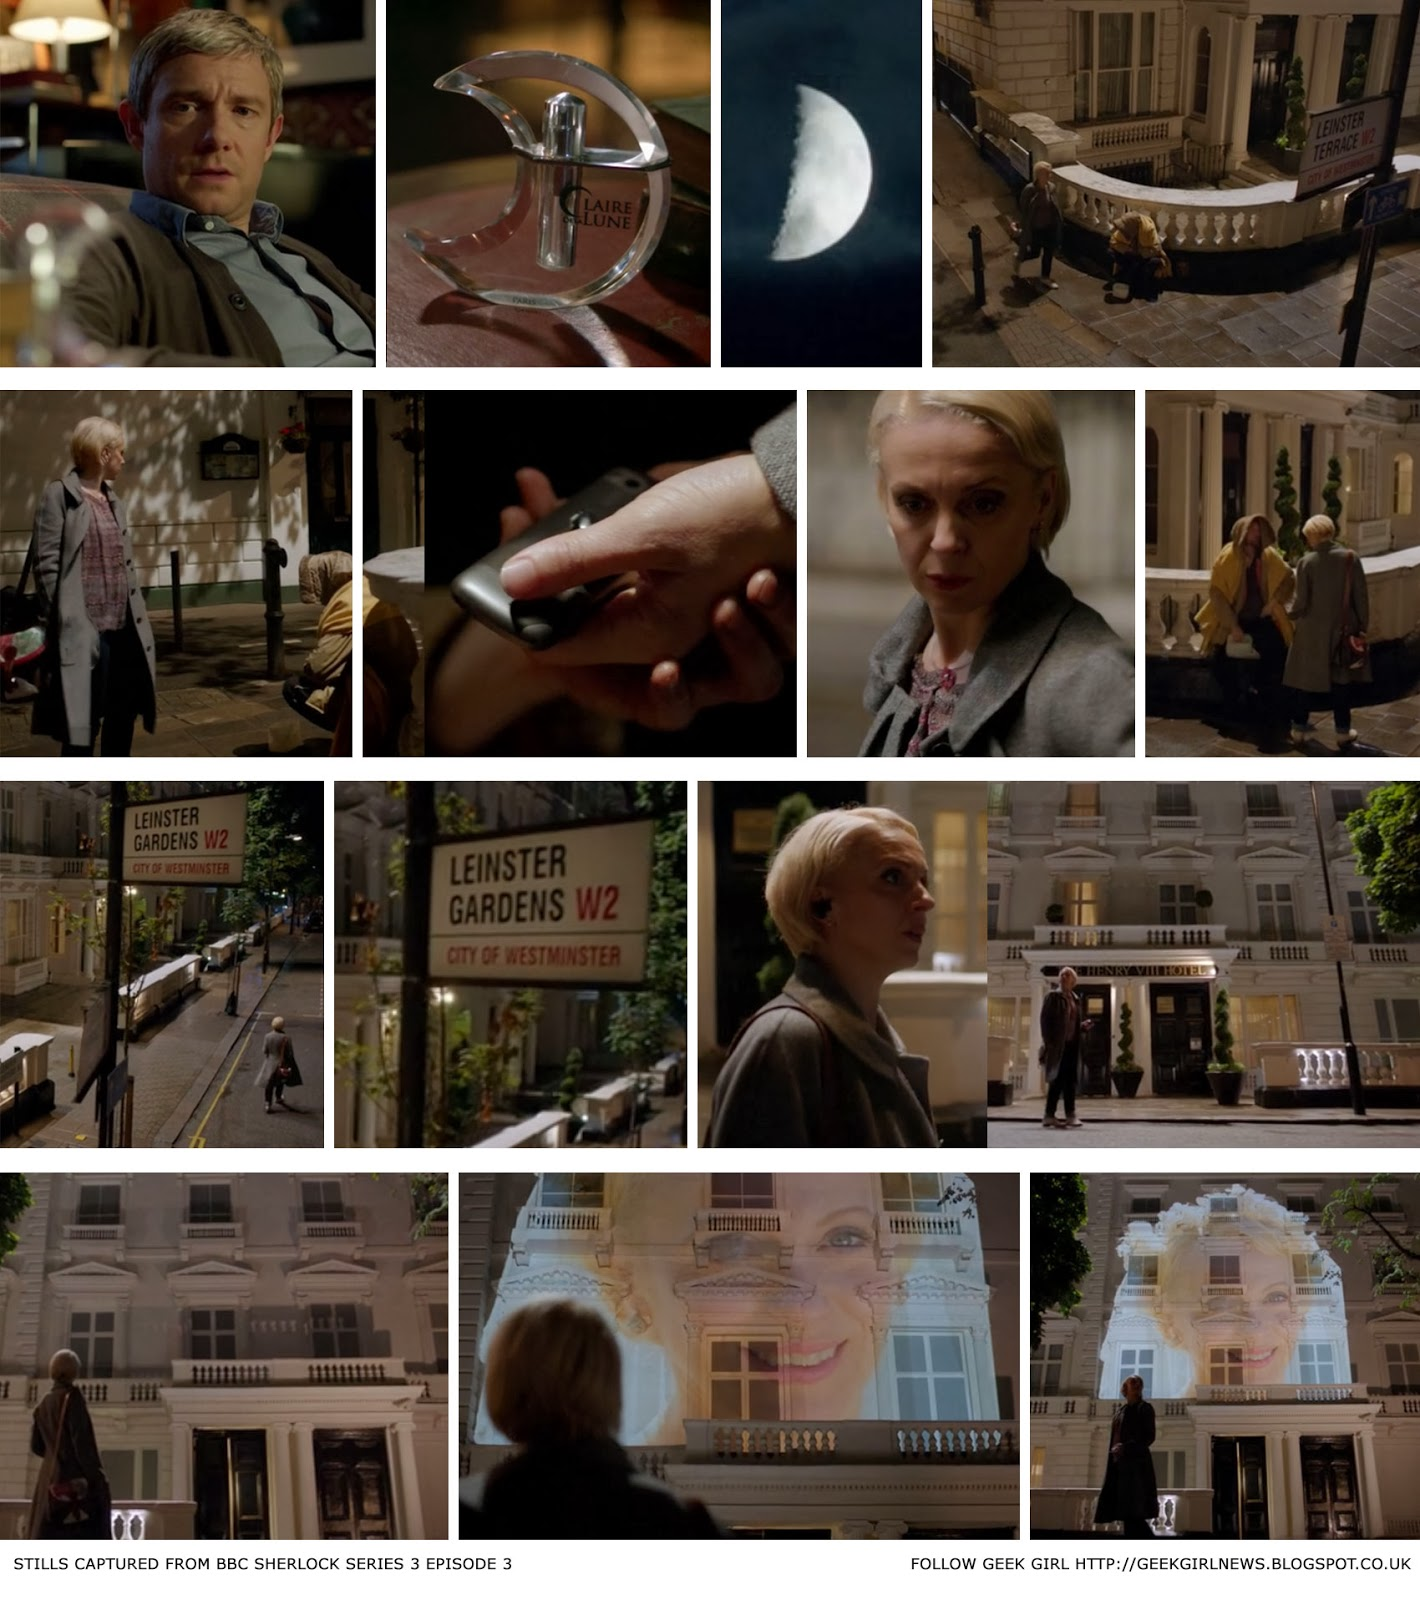 Sherlock and the lie of Leinster Gardens Episode screenshot walkthrough - Geek Girl Kerensa Bryant blog header